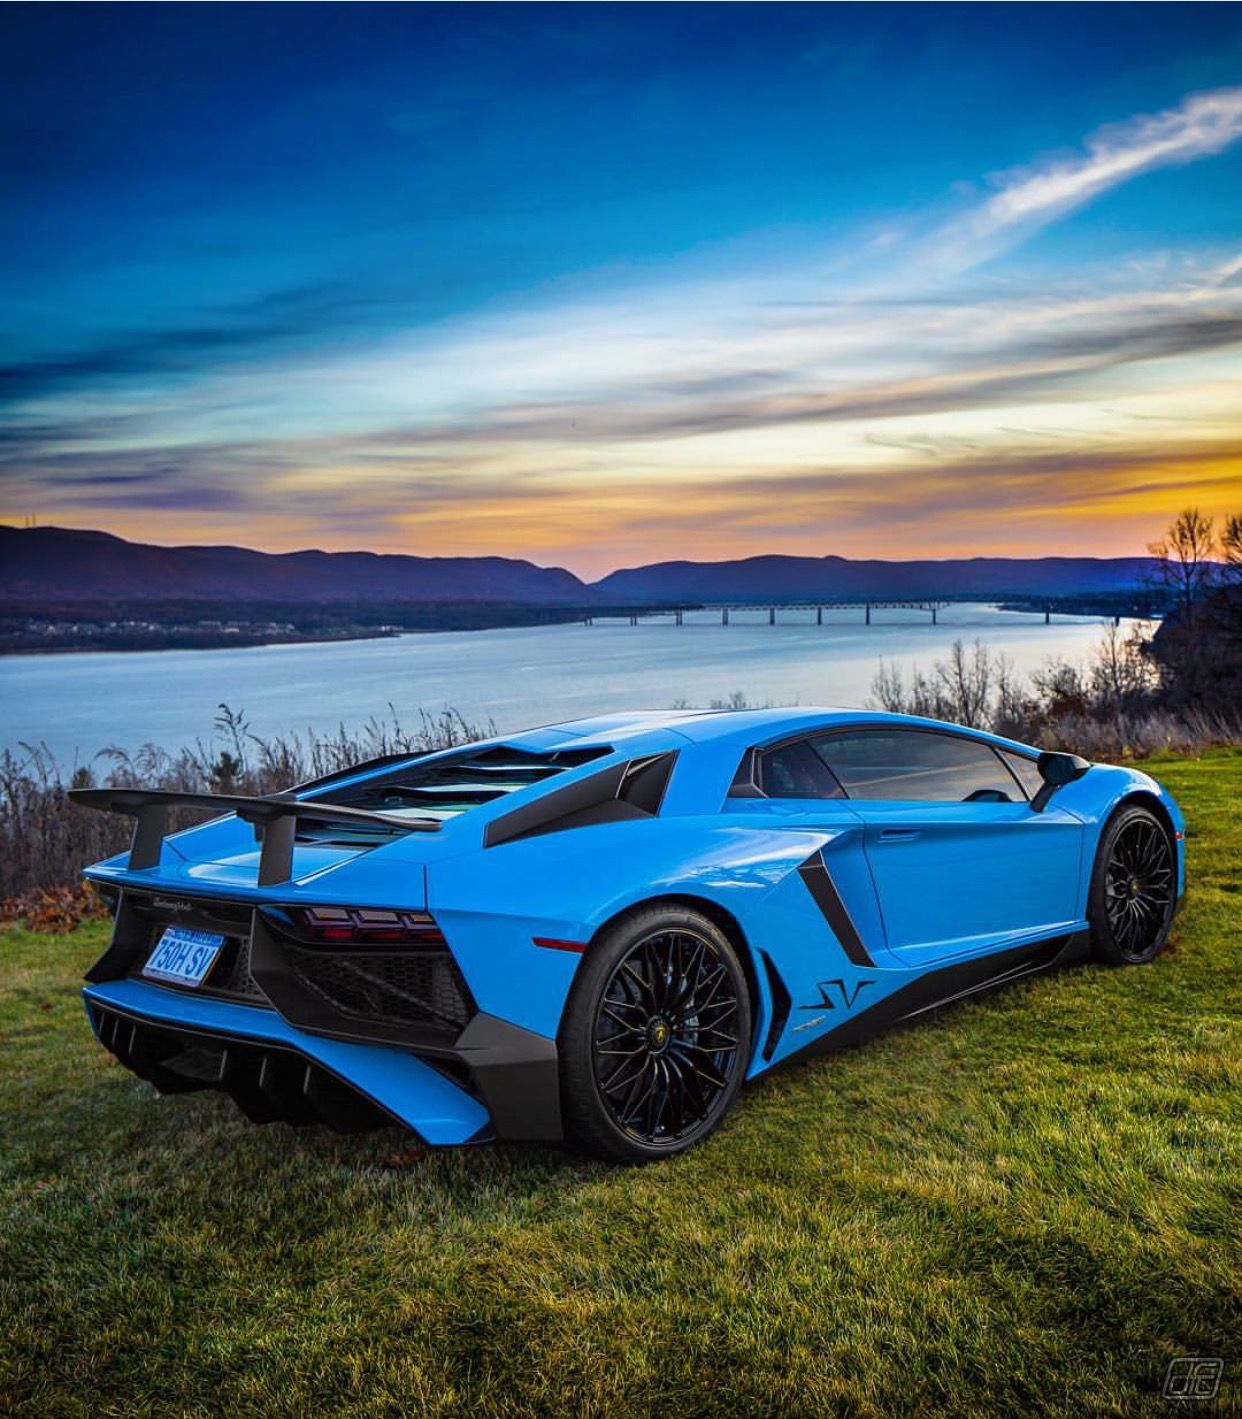 Exceptionnel Lamborghini Aventador Super Veloce Coupe Painted In Blu Cepheus Photo Taken  By: @drivingforceclub On